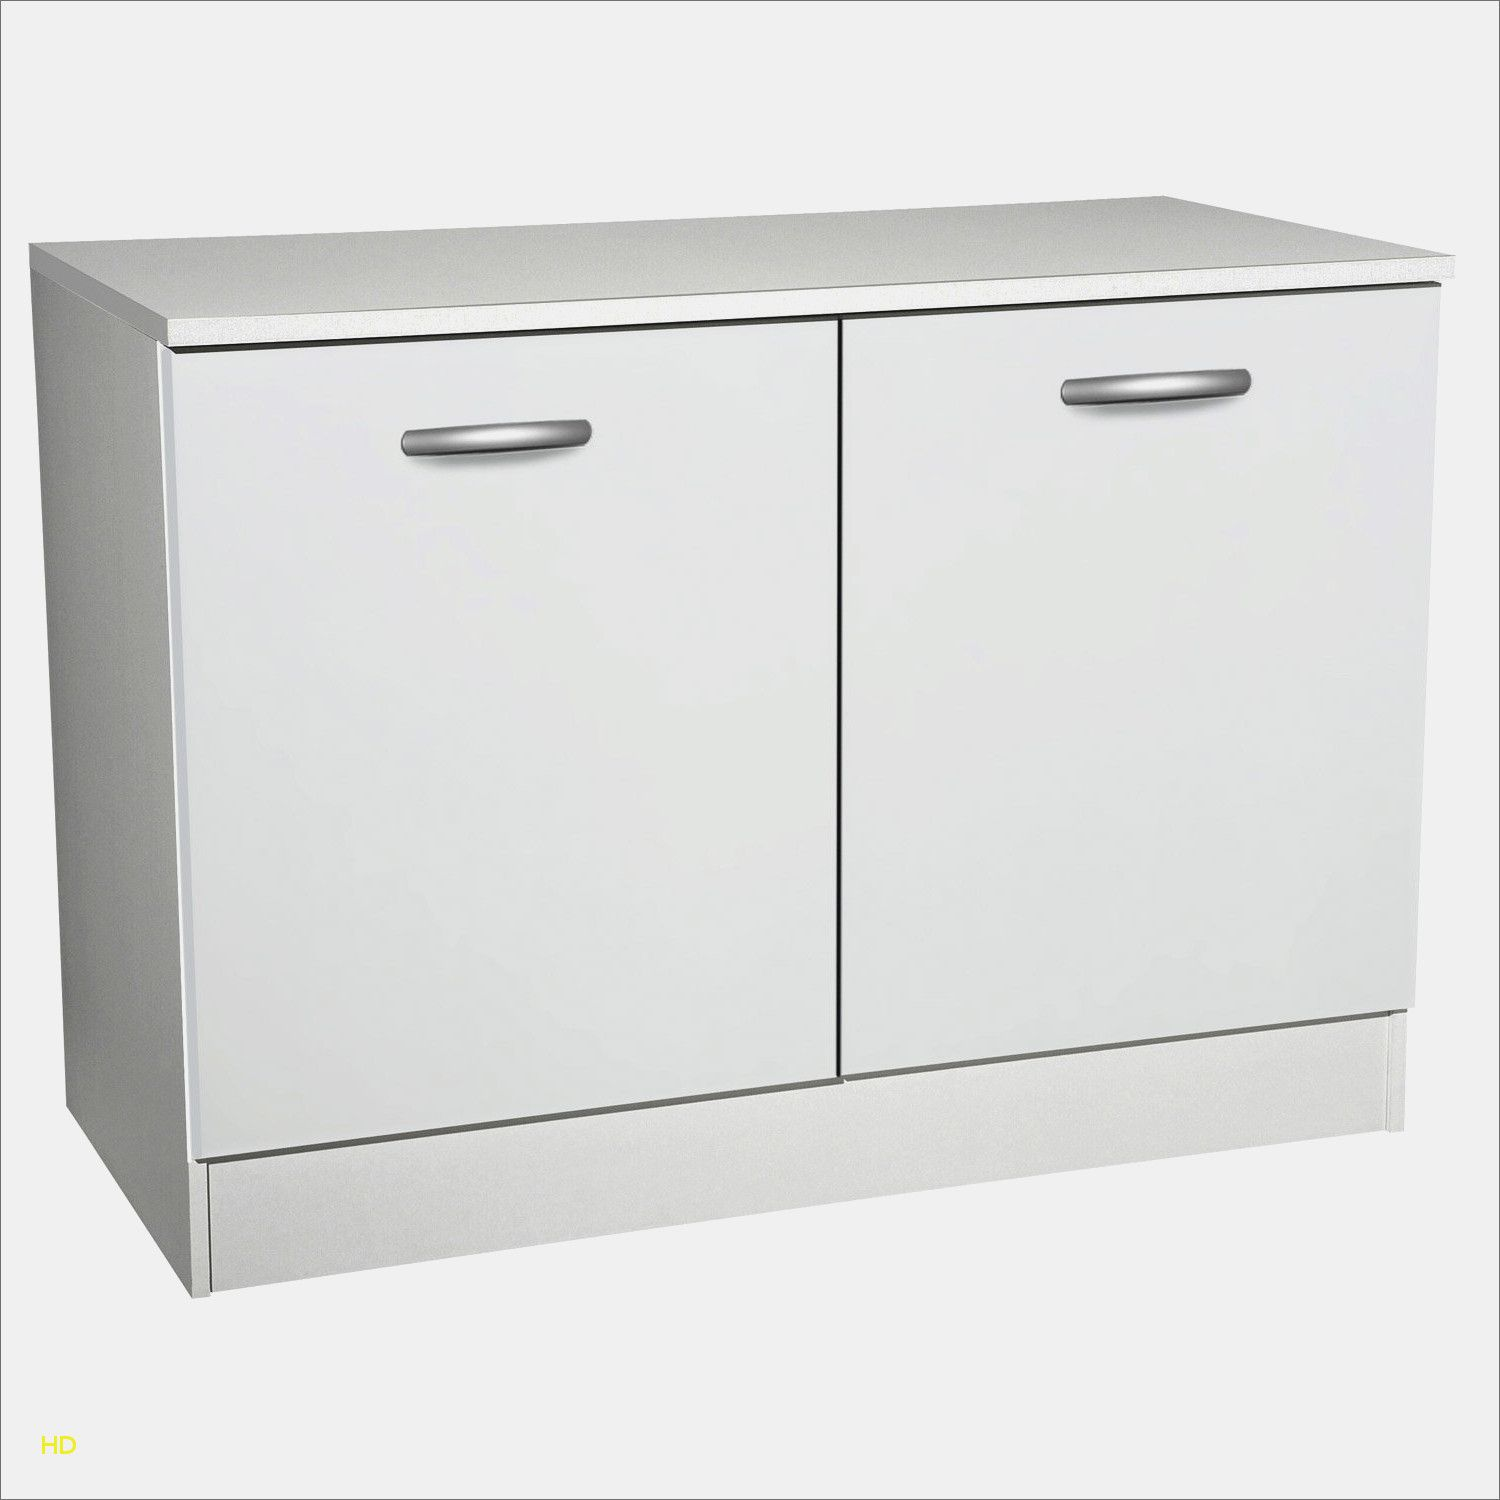 Armoire A Chaussure Ikea Armoire A Chaussure Ikea Stall Range Chaussures 4 Casiers Ikea Ikea Stall Range Chaussures 4 Casiers Vo Decor Ikea 2018 House Design